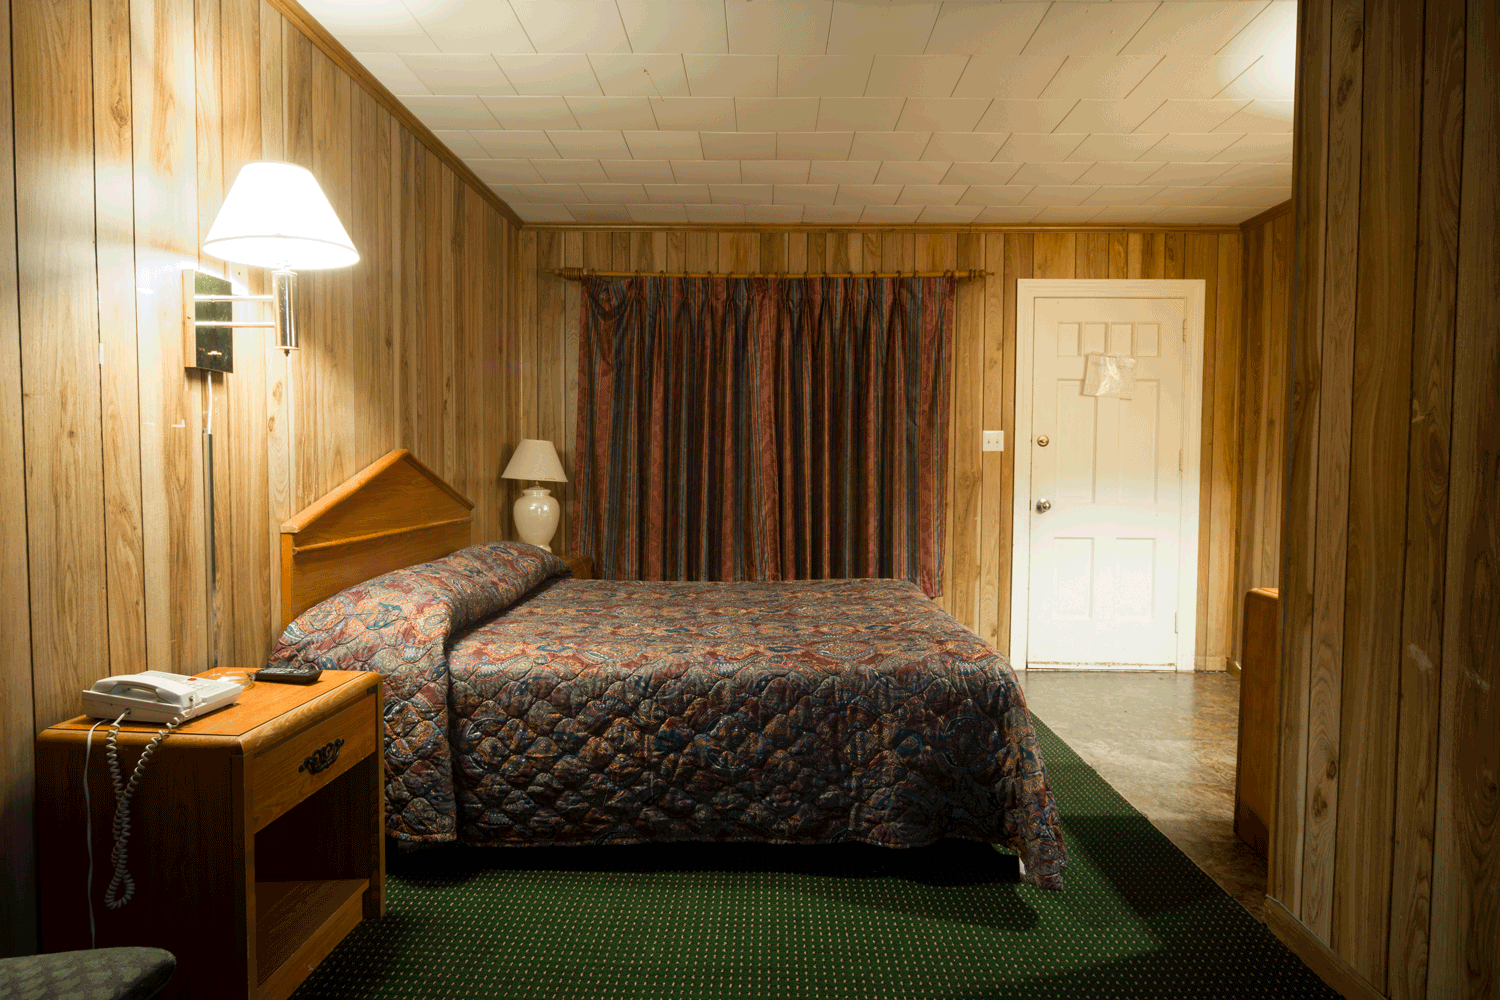 A rustic themed bedroom with basement with a green carpet and properly by wall lamps